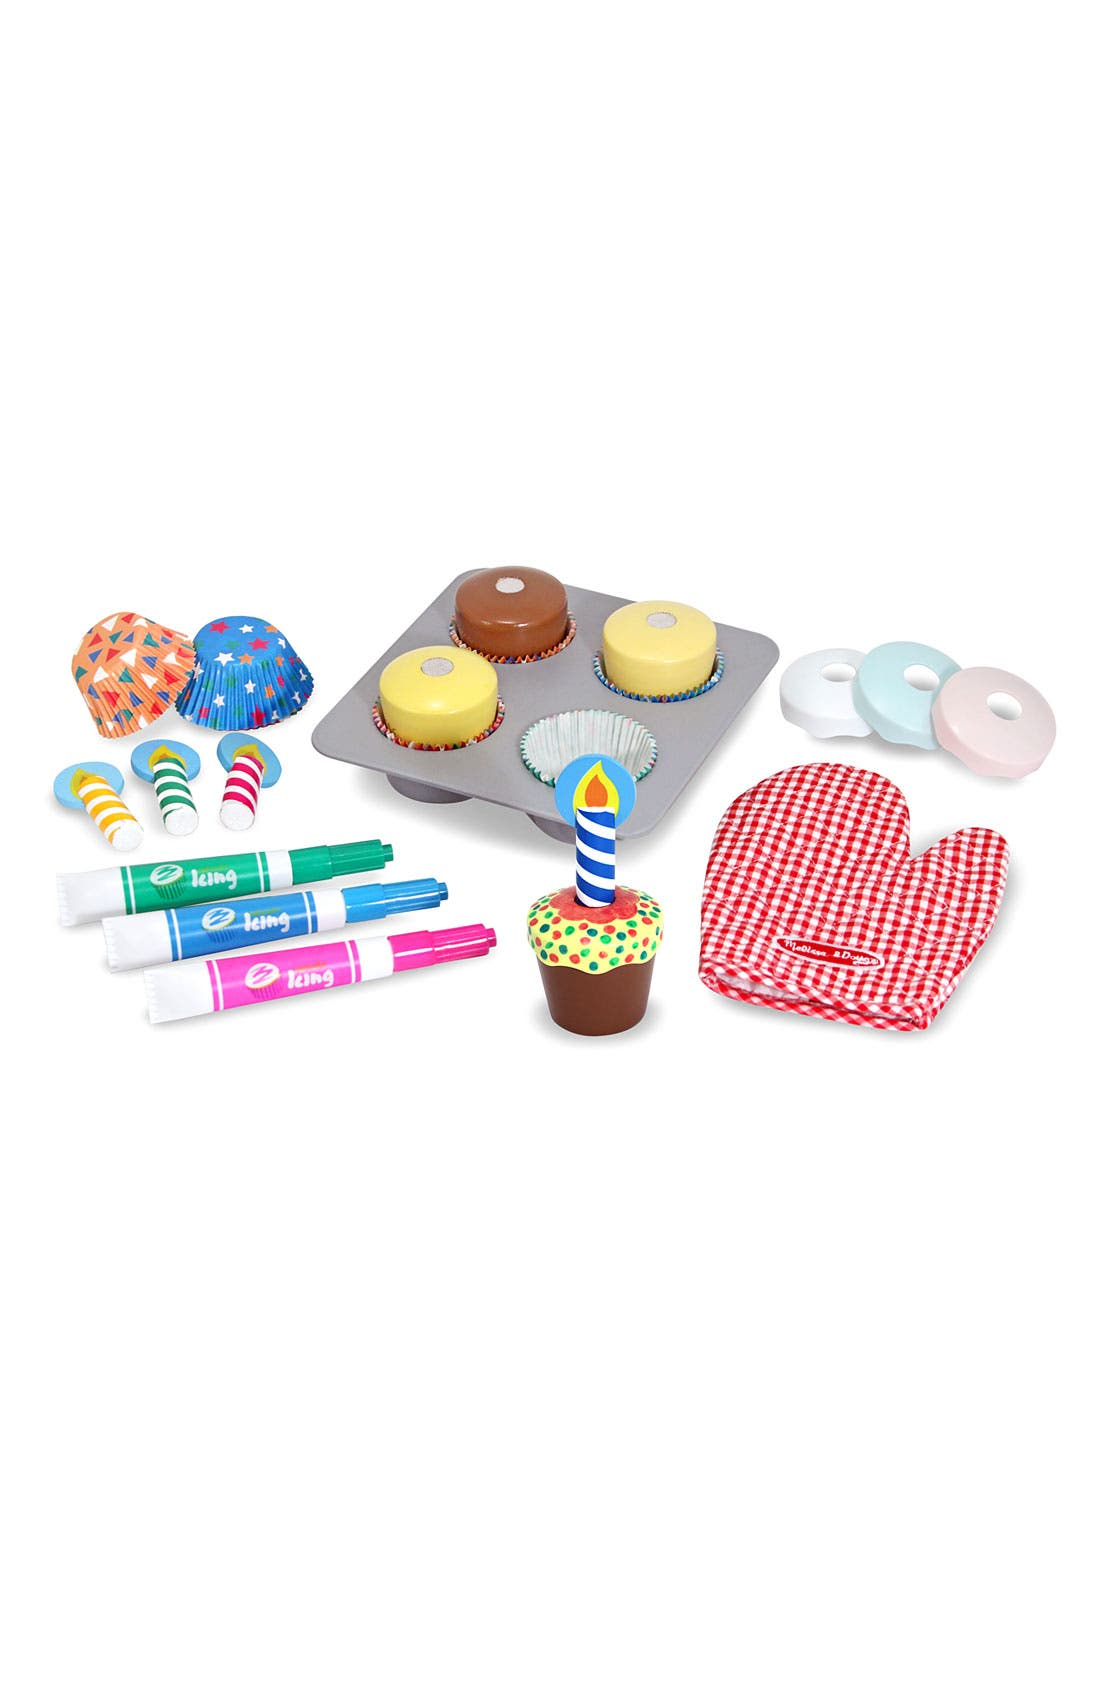 Alternate Image 1 Selected - Melissa & Doug Toy Cupcake Set